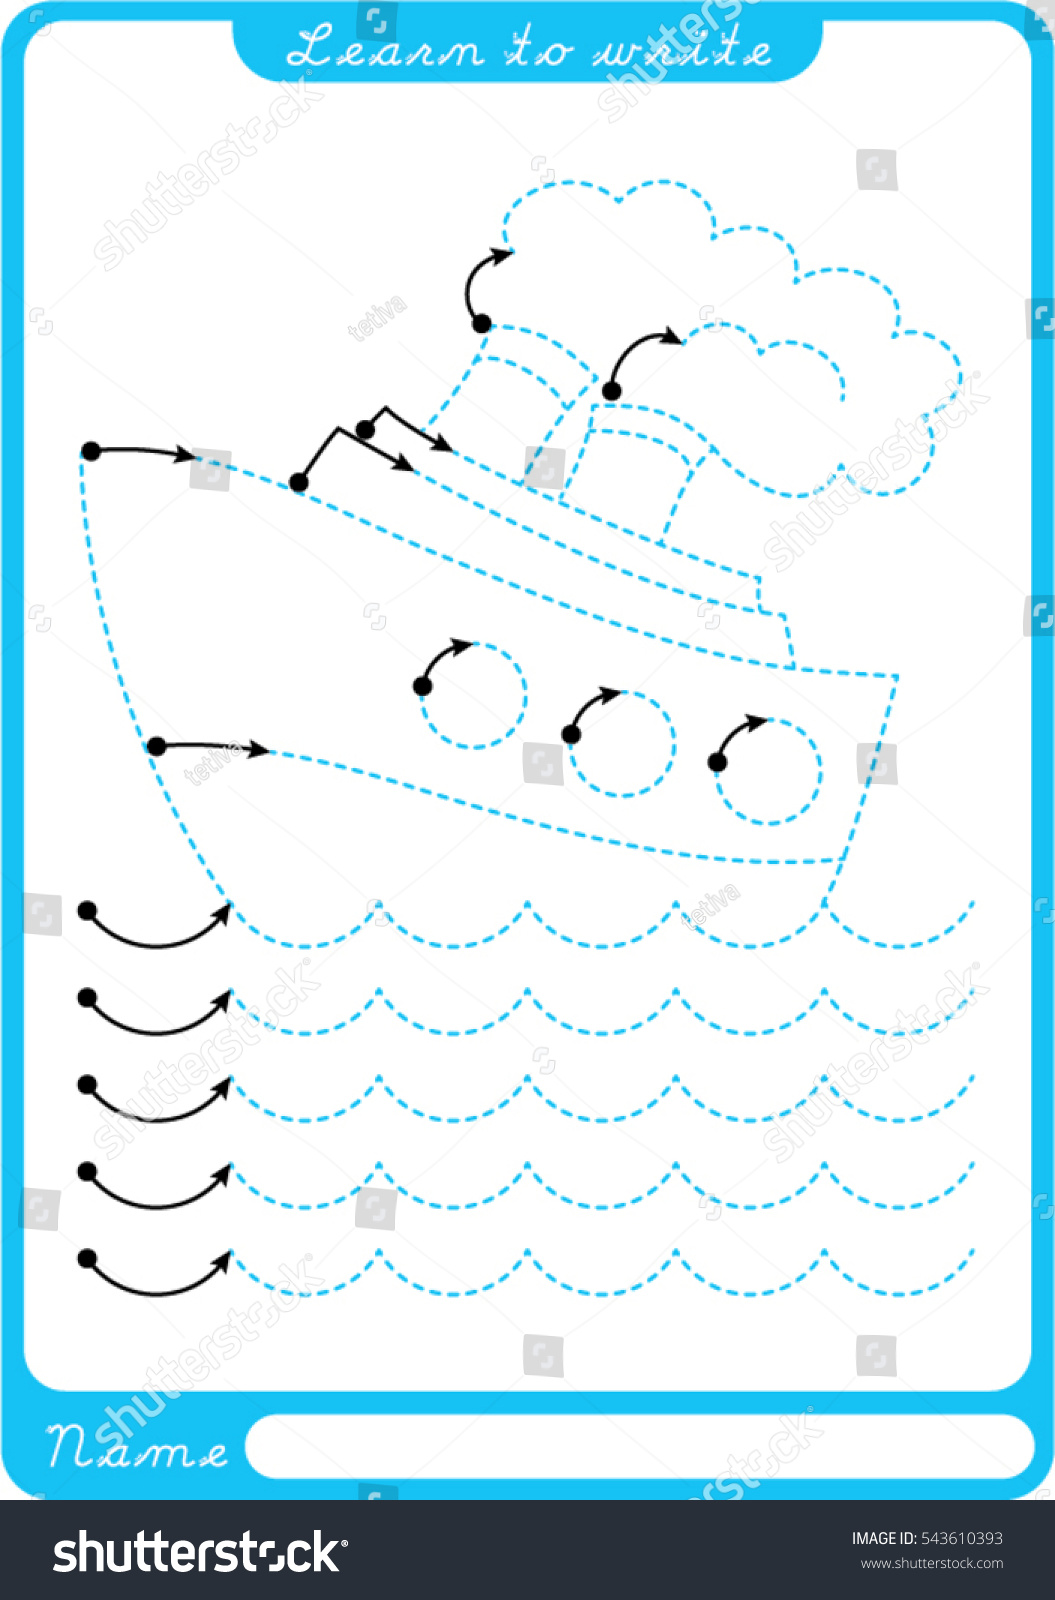 Vector Drawing Lines Worksheet : Boat sea waves preschool worksheet practicing stock vector